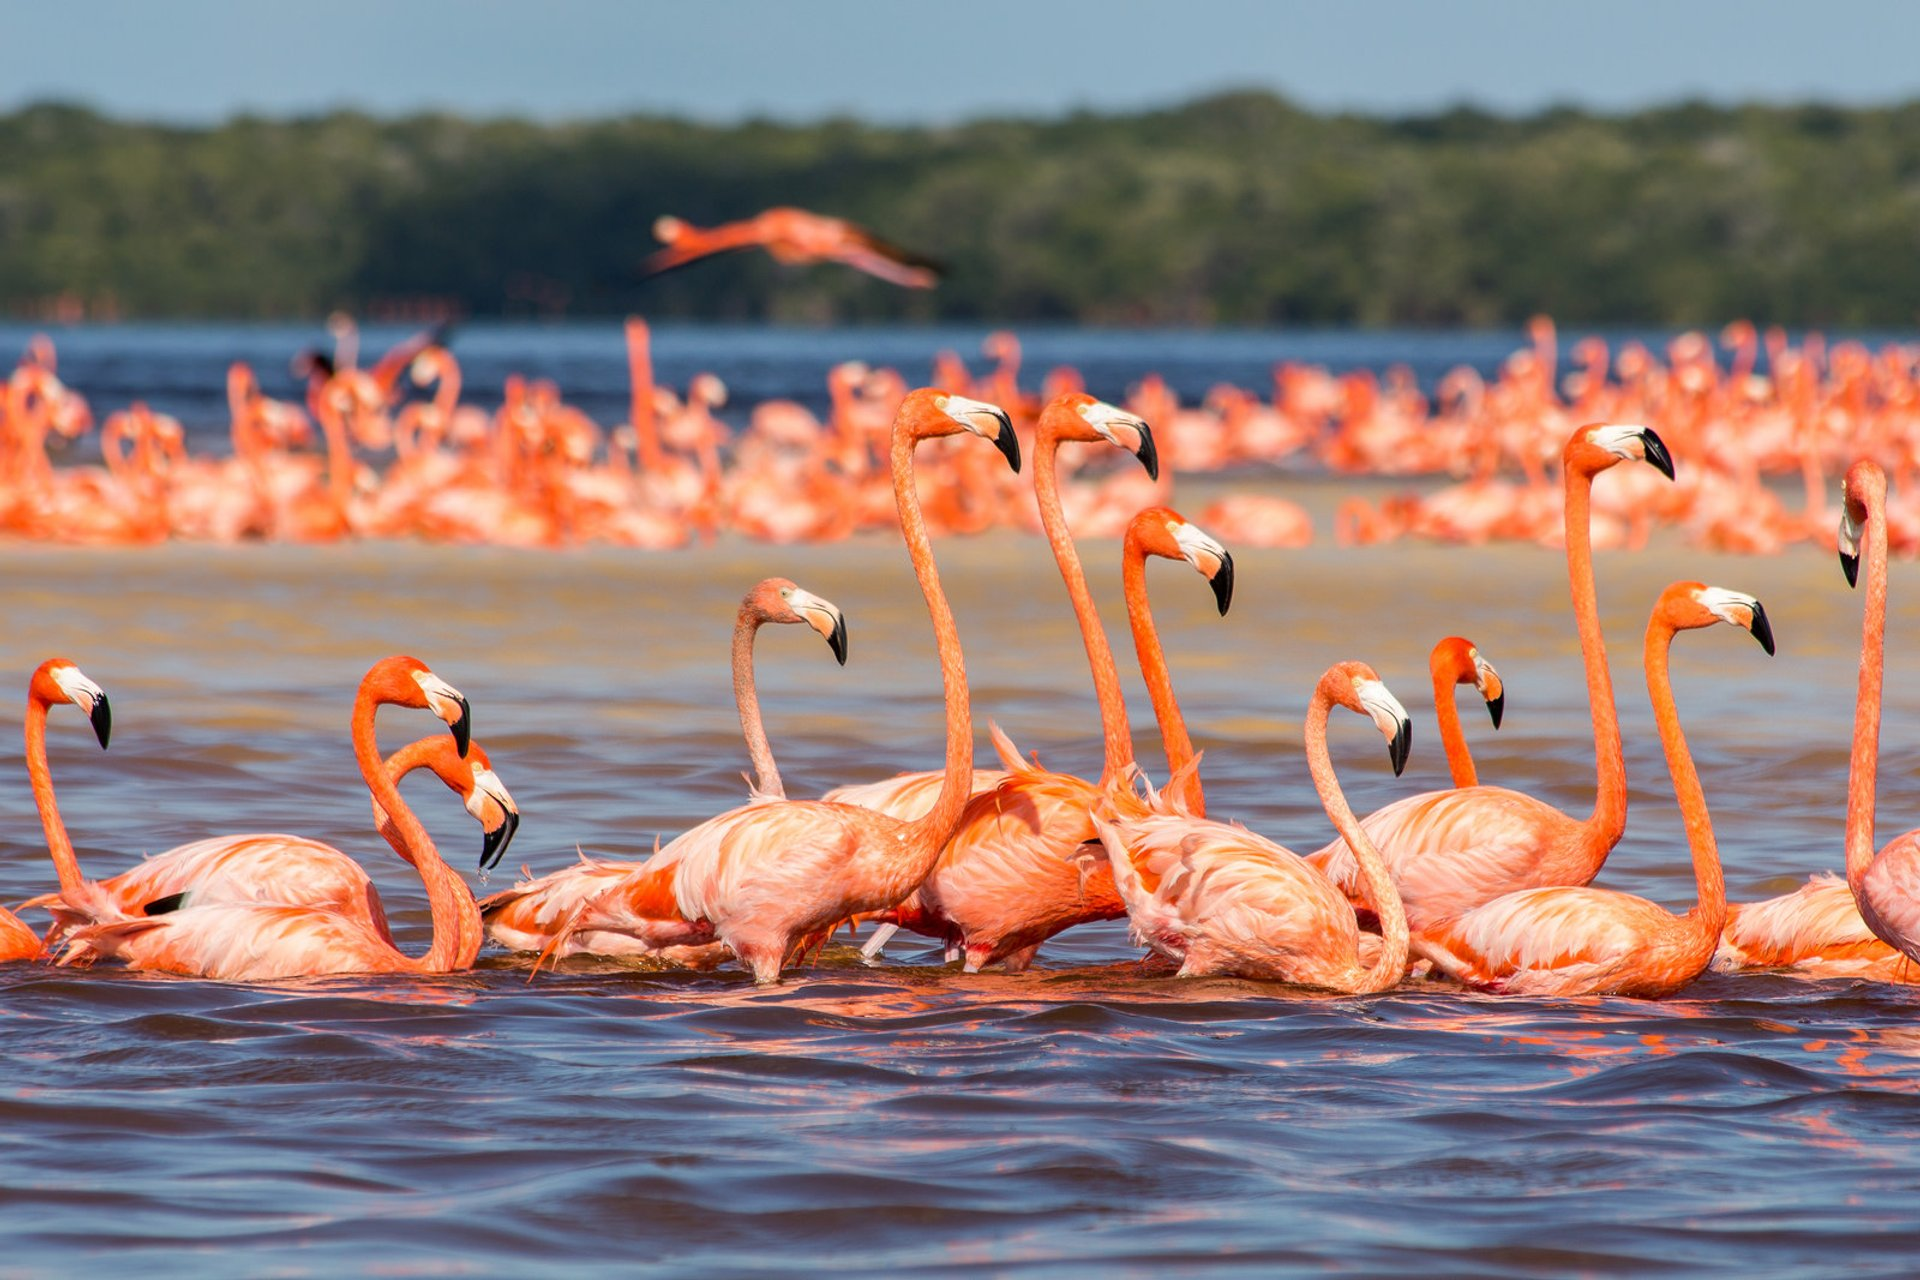 Flamingos in Mexico 2020 - Best Time